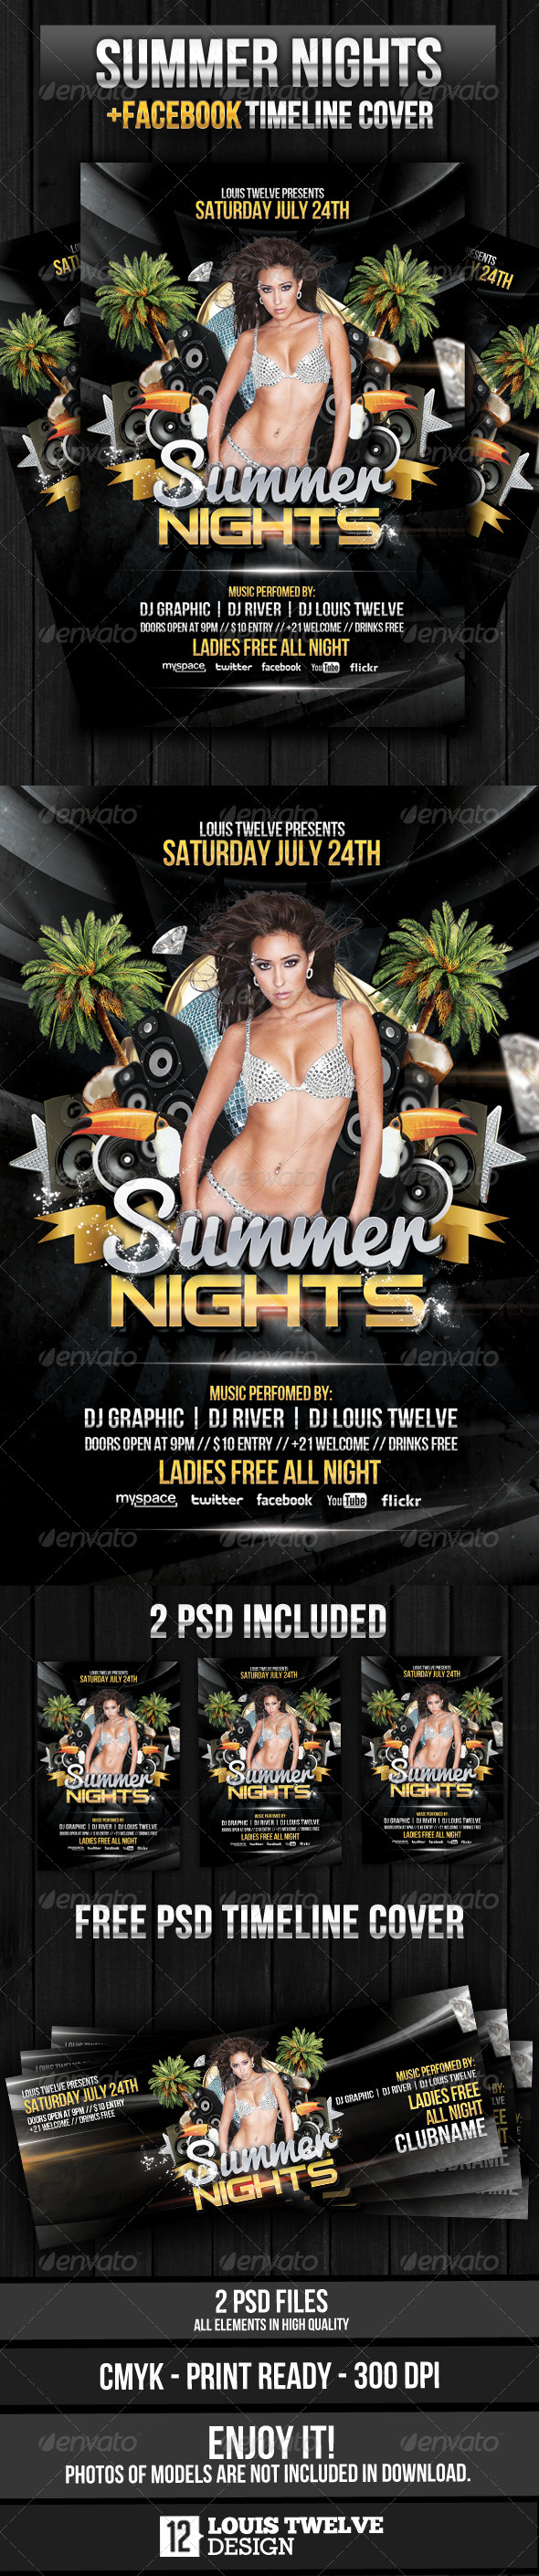 Summer Nights Party Flyer + Facebook Timeline - Clubs & Parties Events